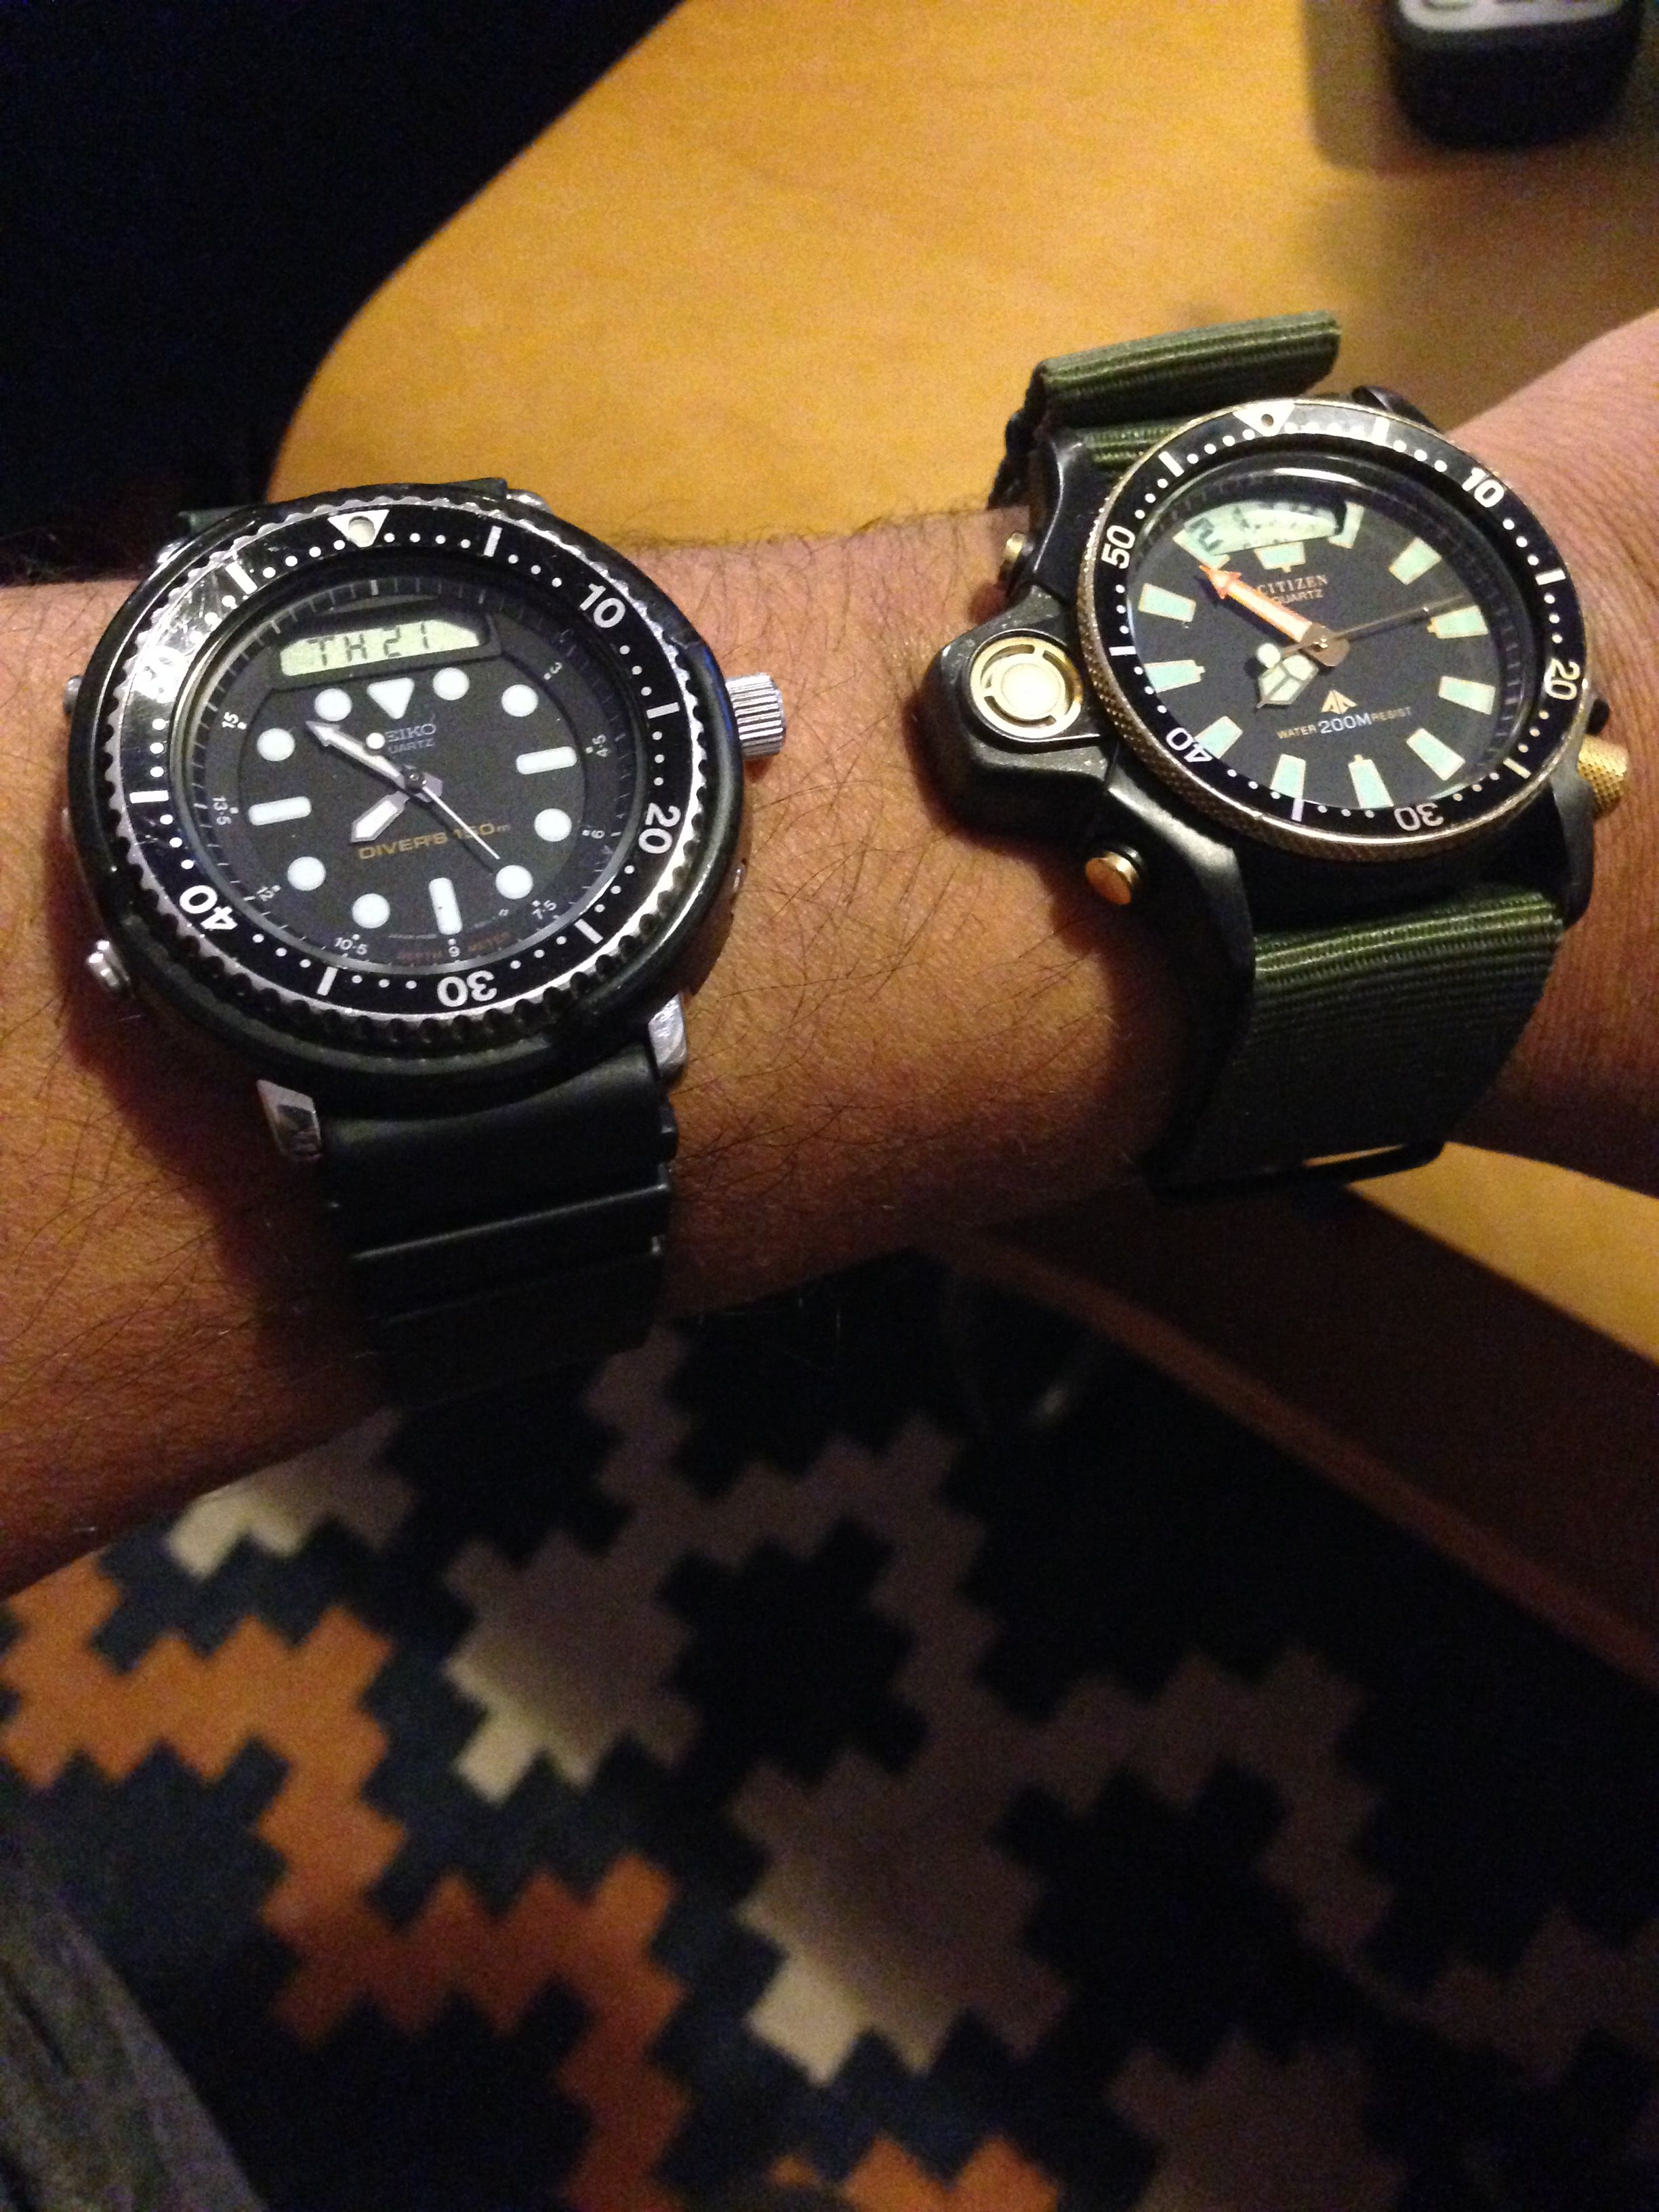 comments and watches seiko r new badass watch first